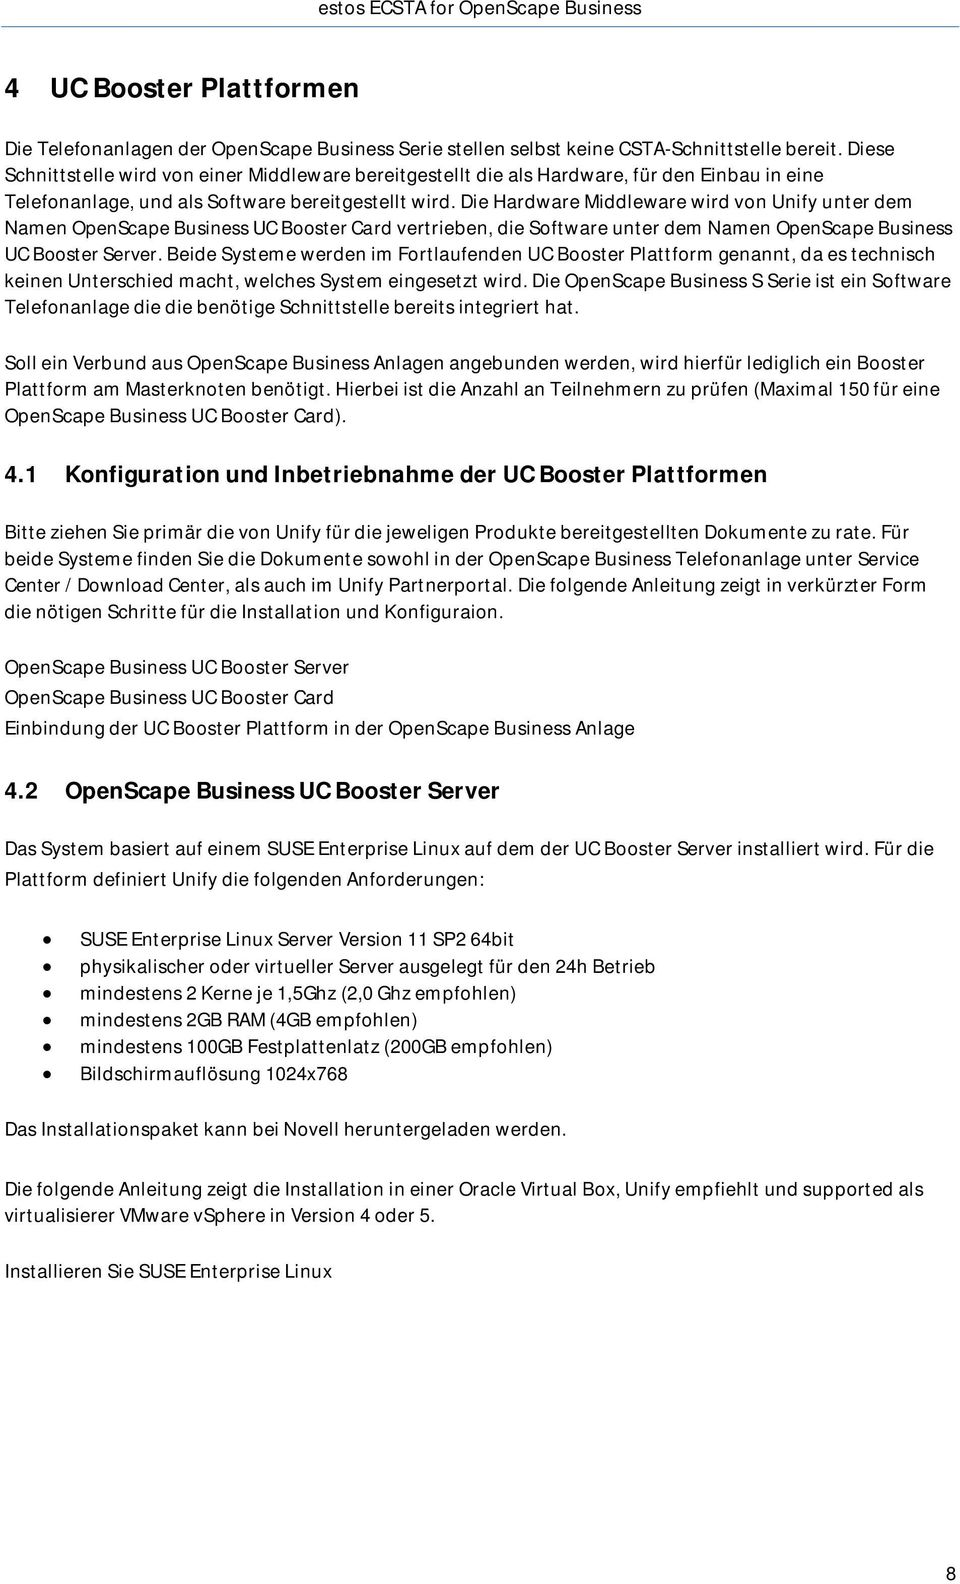 Die Hardware Middleware wird von Unify unter dem Namen OpenScape Business UC Booster Card vertrieben, die Software unter dem Namen OpenScape Business UC Booster Server.